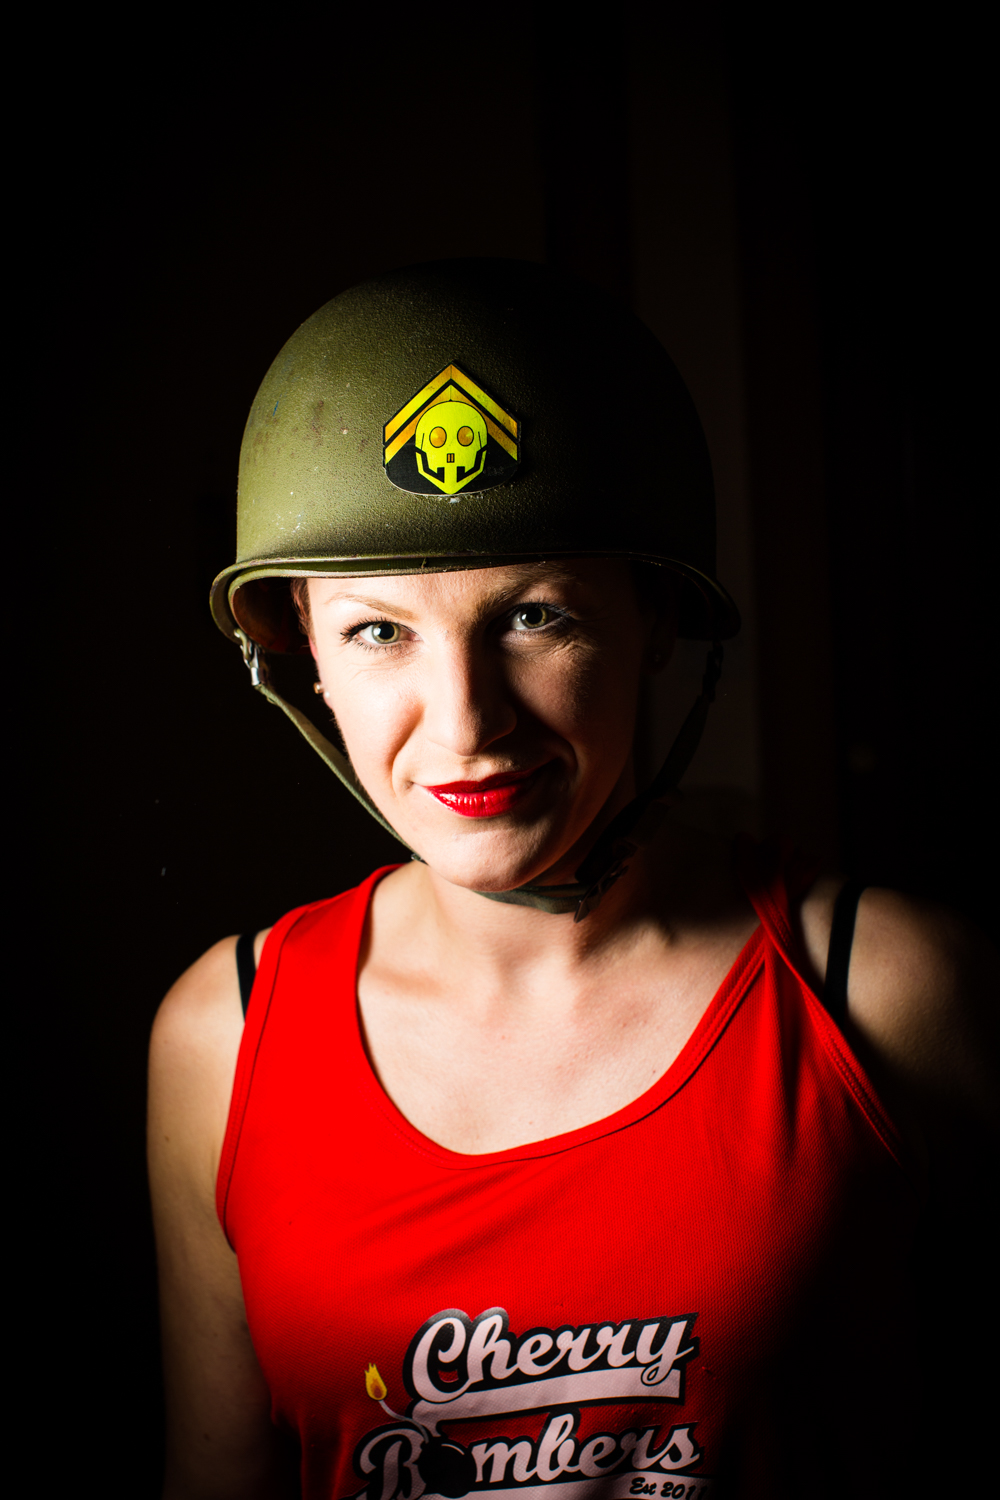 Cherry Bombers headshot shoot-13.jpg